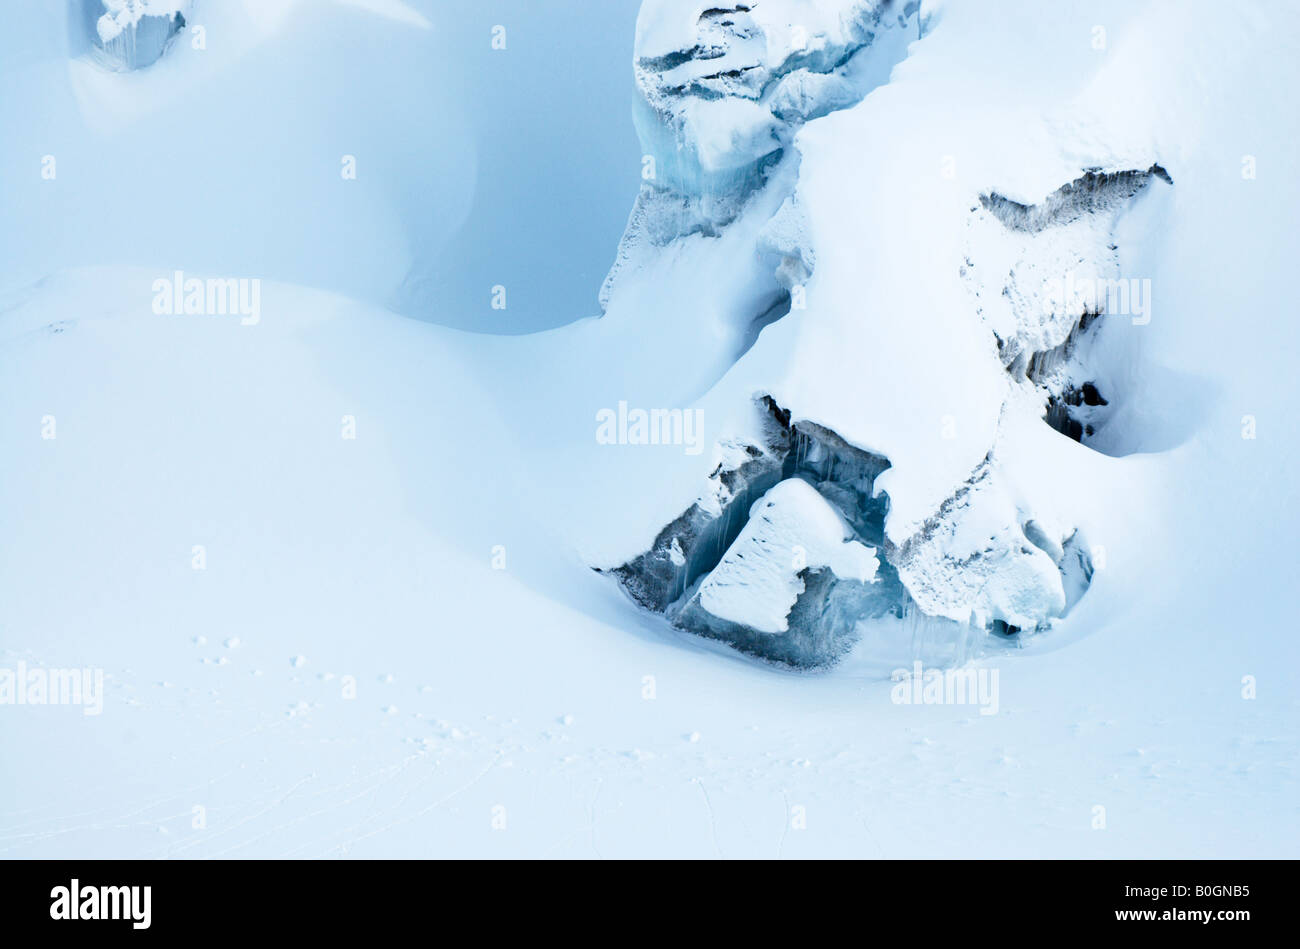 Fresh snow hiding the menacing crevasses on Argentiere glacier, Chamonix, France - Stock Image